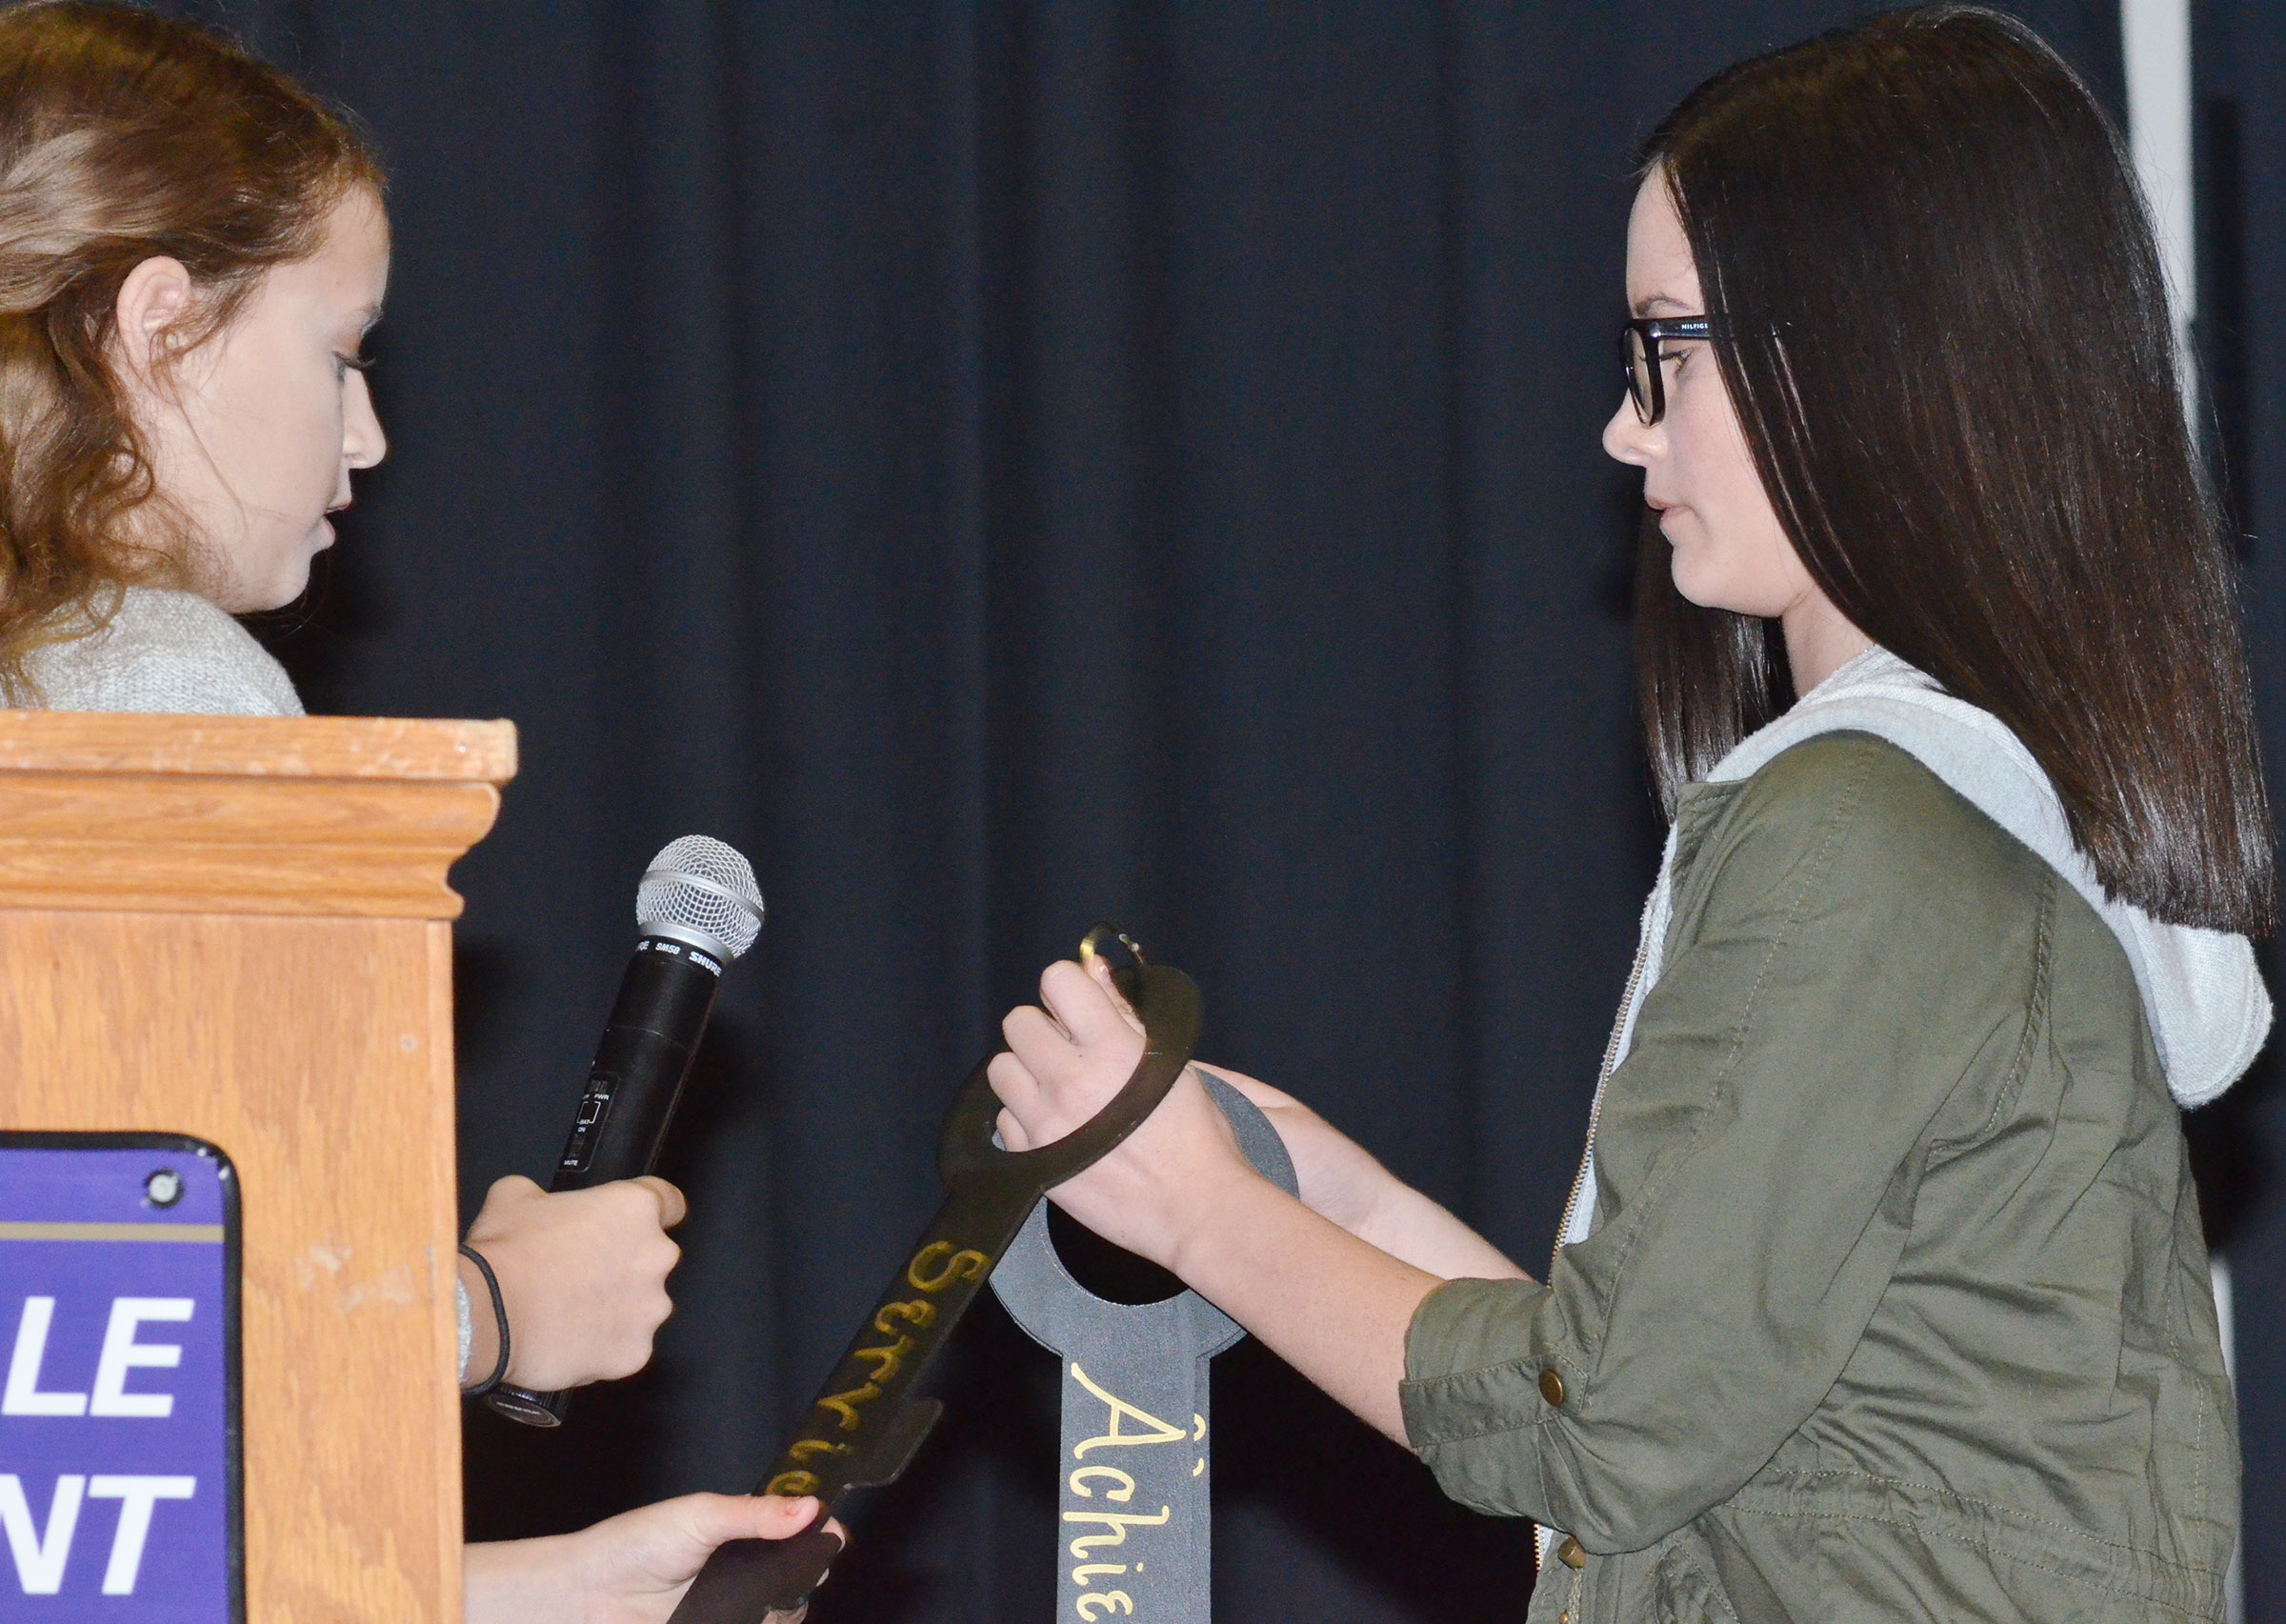 CMS Beta member and eighth-grader Rylee Petett, at left, places the key of service on the keyring as vice president and eighth-grader Sarah Adkins holds it.